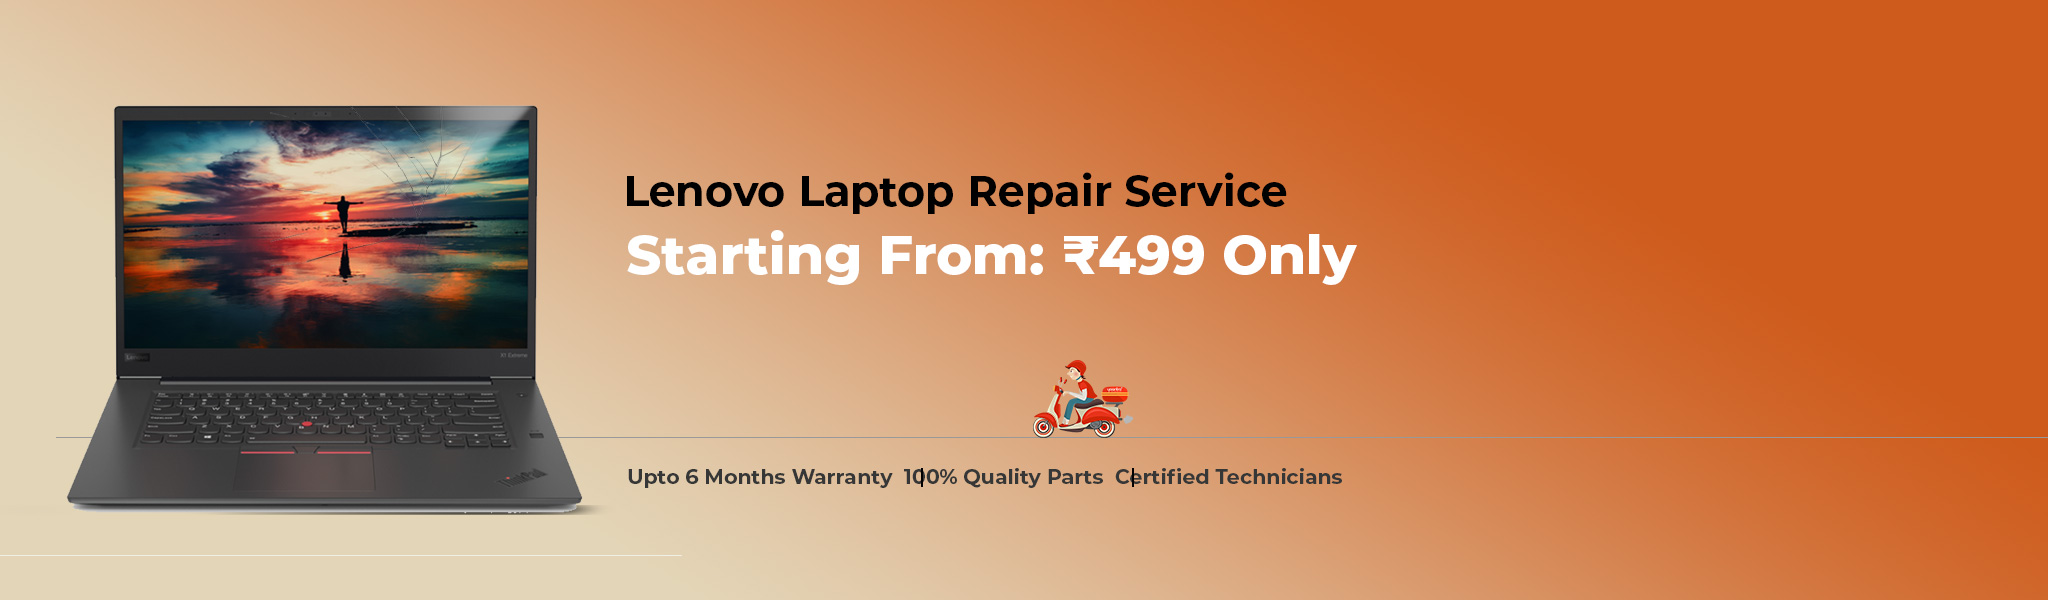 lenovo-laptop-repair.jpg